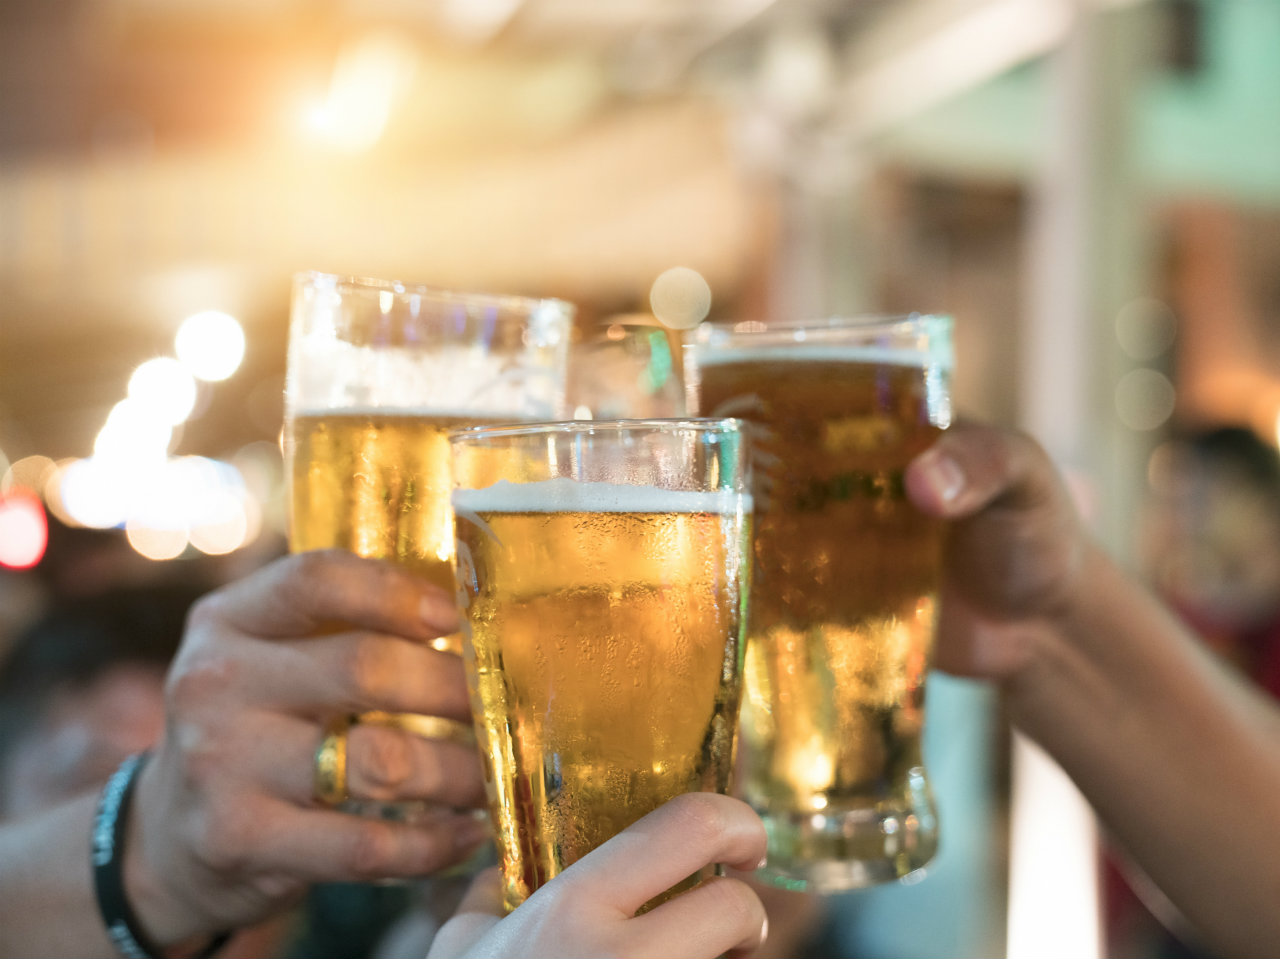 Drinking Moderate Amounts of Alcohol Can Help Clean Your Brain of Toxins